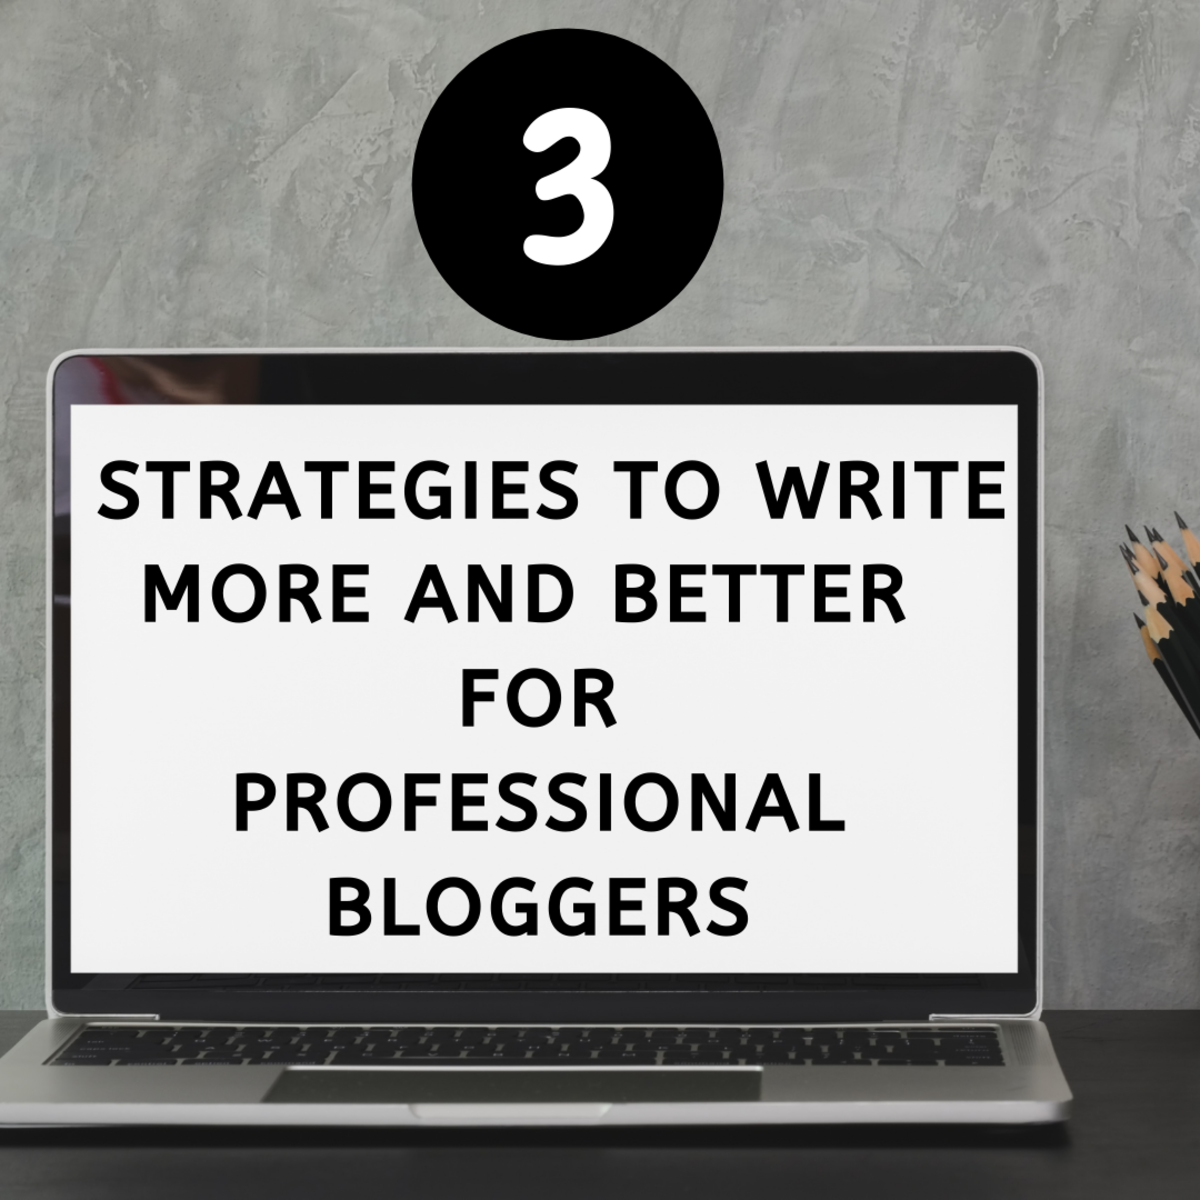 Proven strategies to write more and better for professional blogging